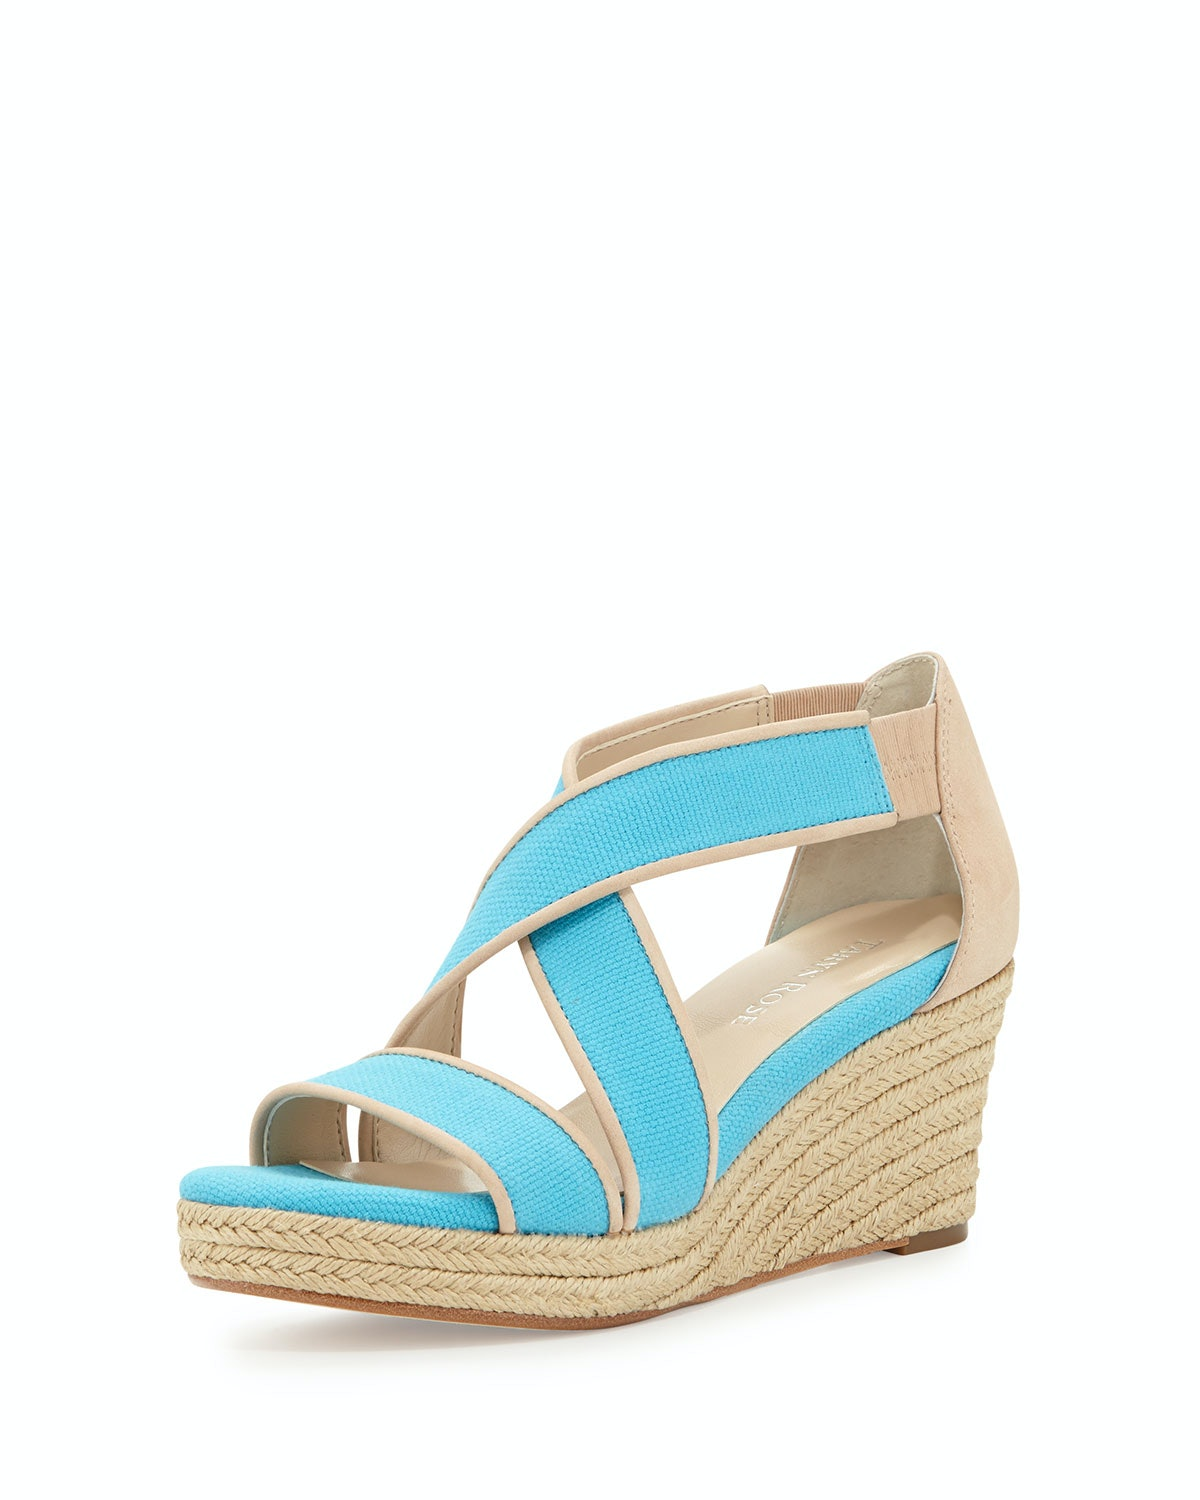 c4c584e50f973 8 Ways to Make Sandals More Comfortable